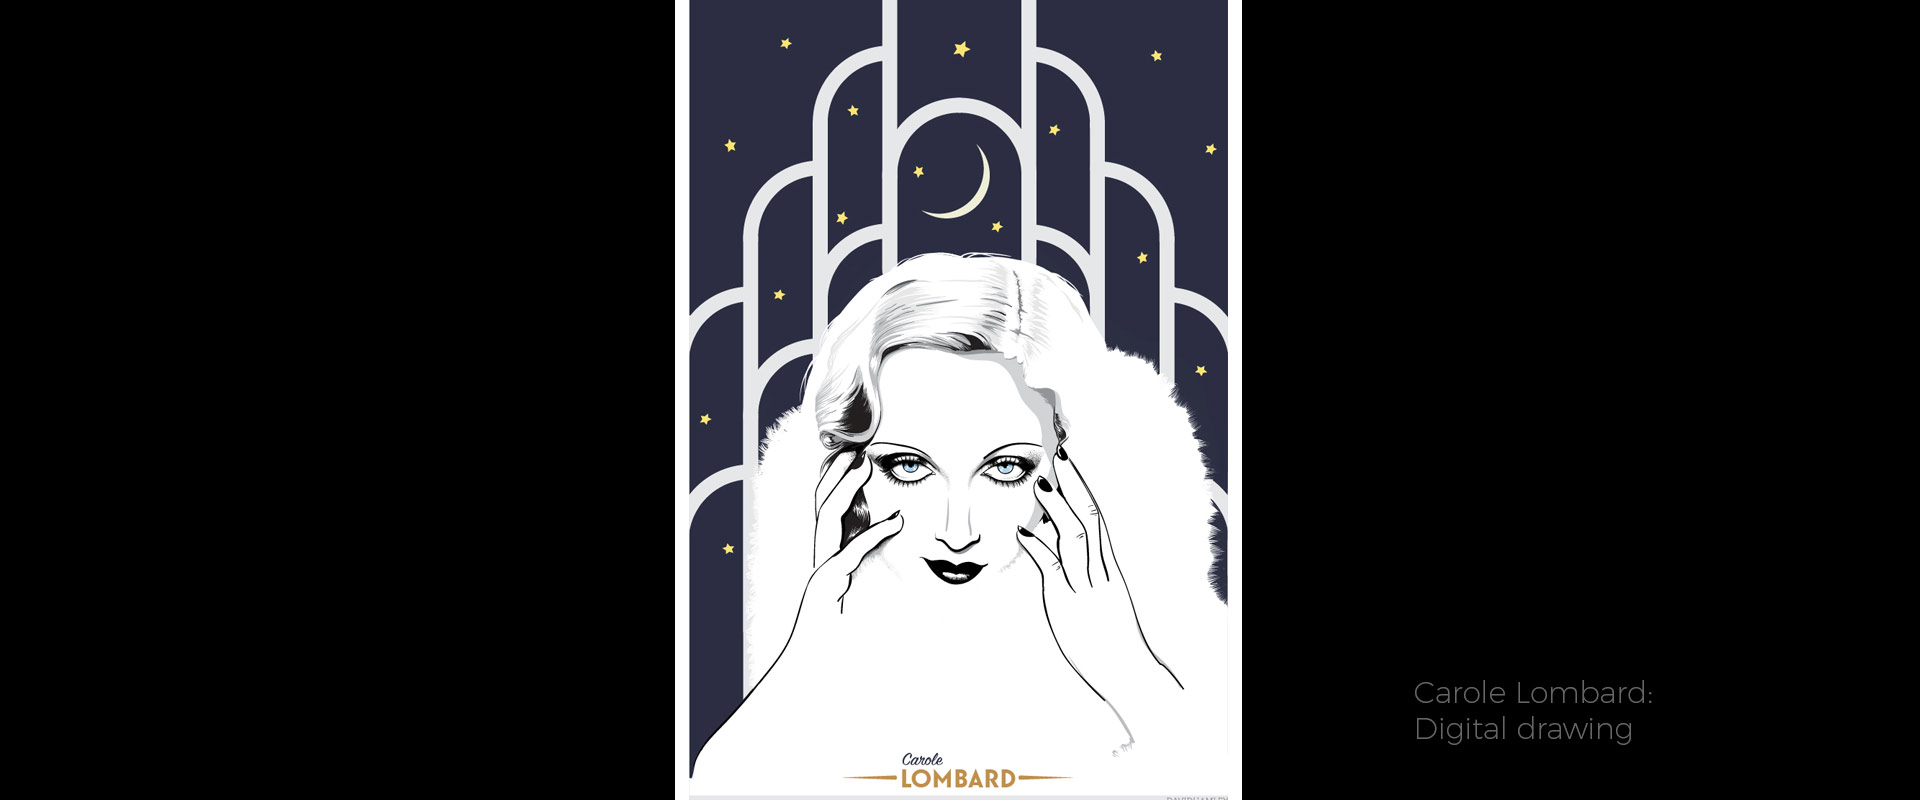 Carole Lombard, illustration by David Hamley